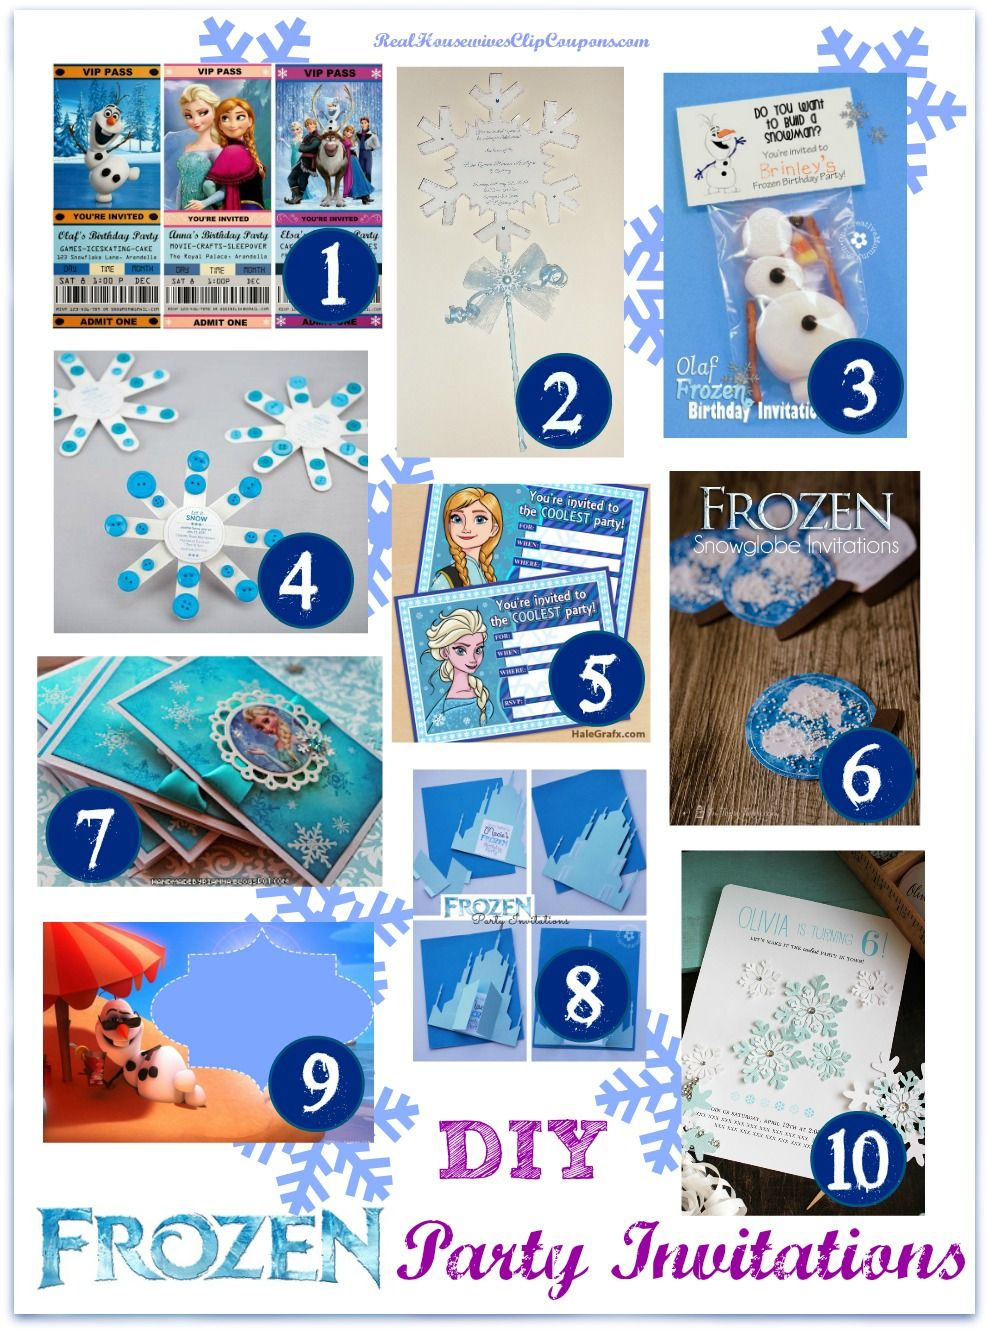 DIY Frozen Party Invitations | Party invitations, Frozen party and ...